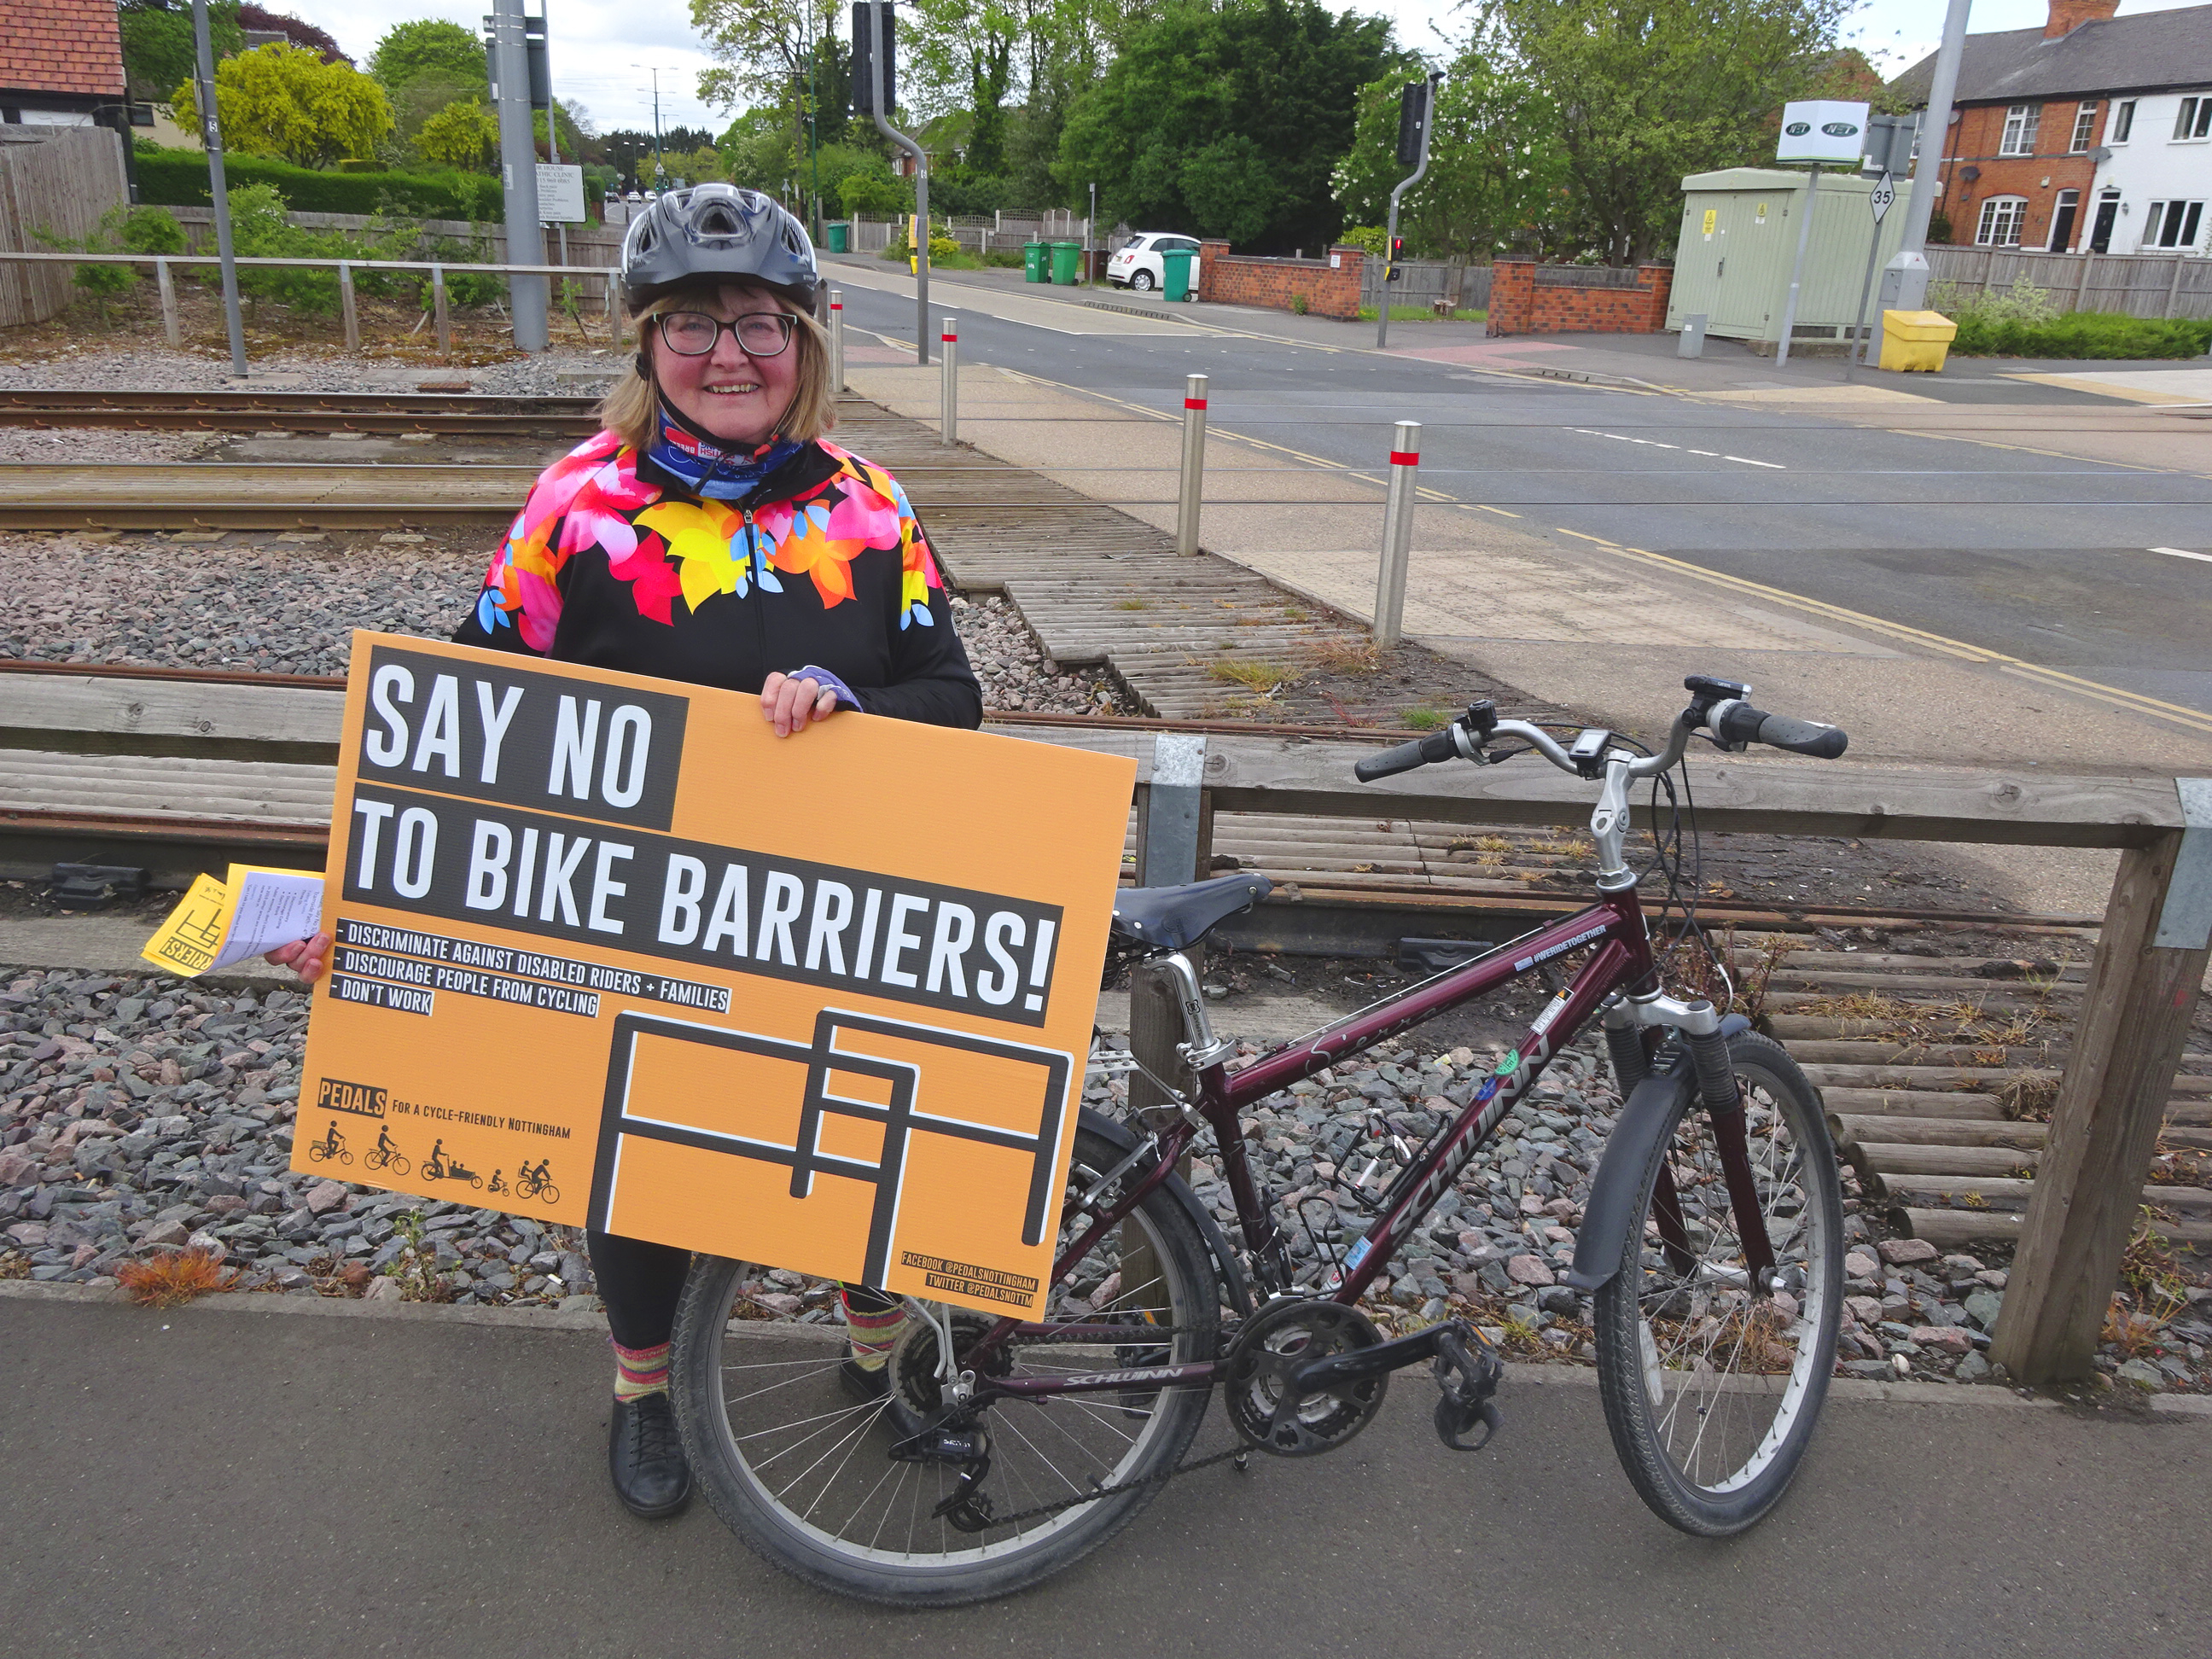 Pedals Protest Plans for Cycle Path Barriers – Pedals